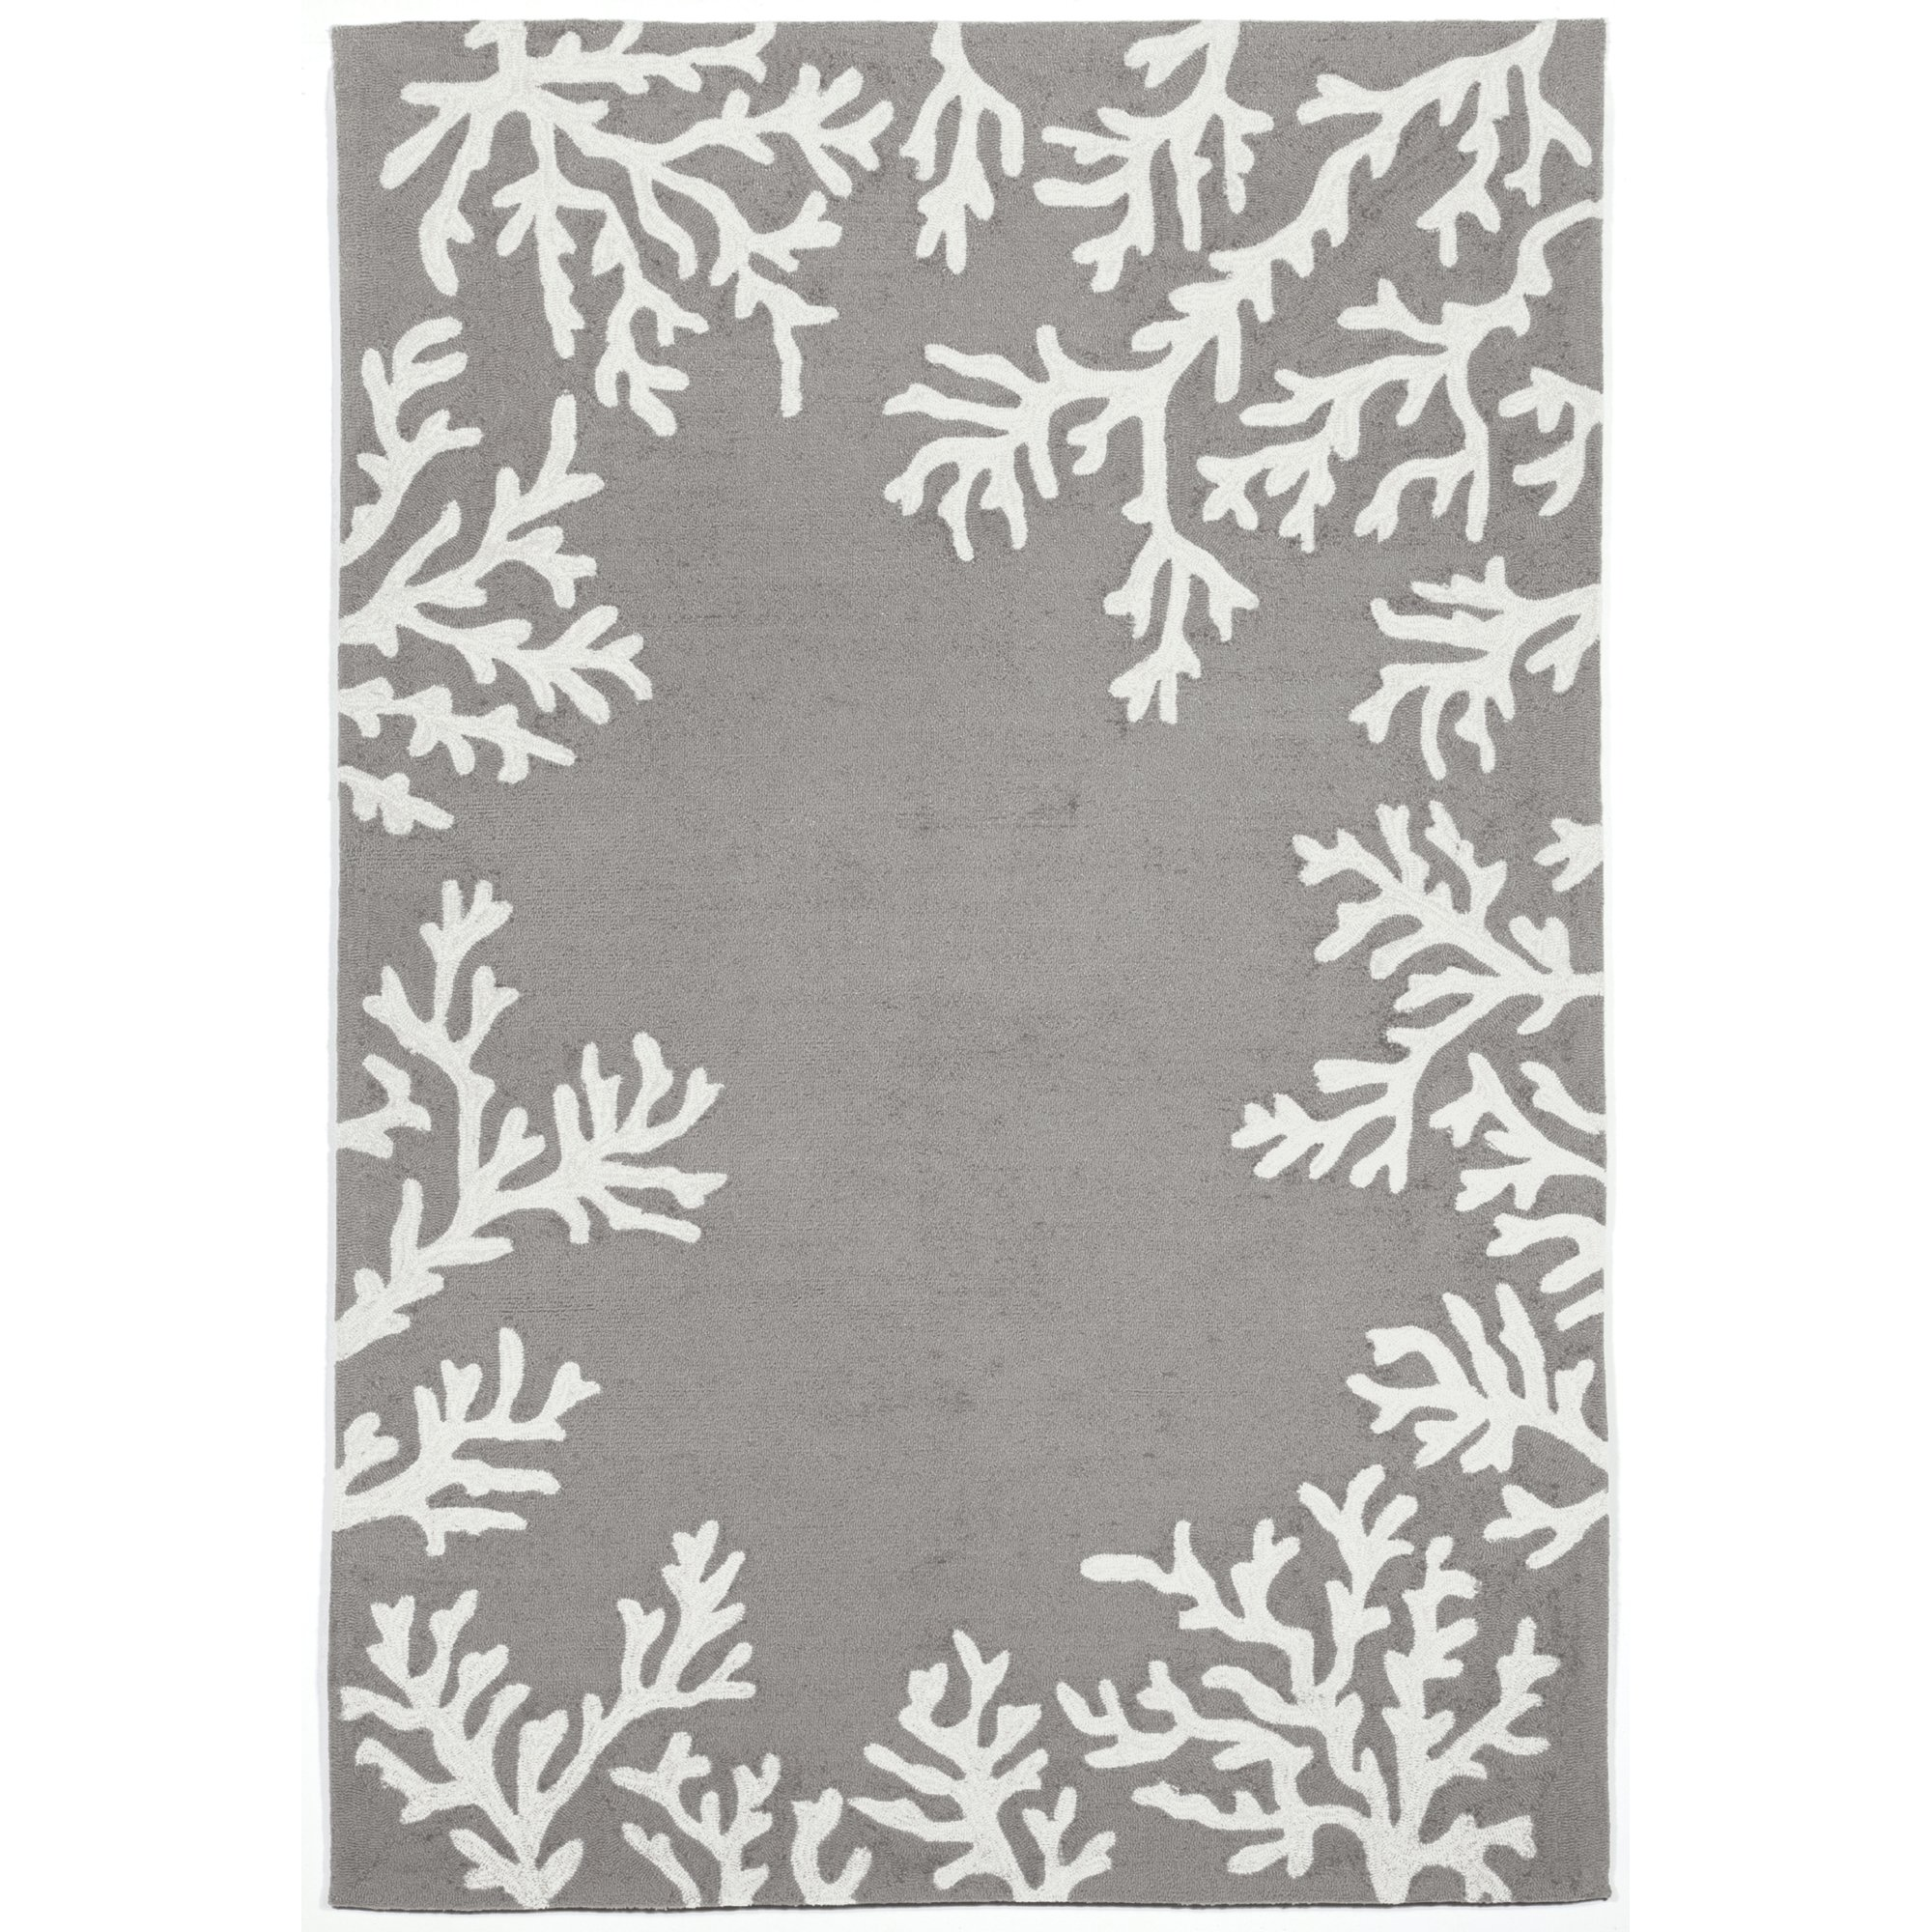 Liora Manne CAP12162055 Capri Shell Coral Reef Border Coastal Ocean Indoor/Outdoor Rug, 5' X 7'6'', Silver and Ivory